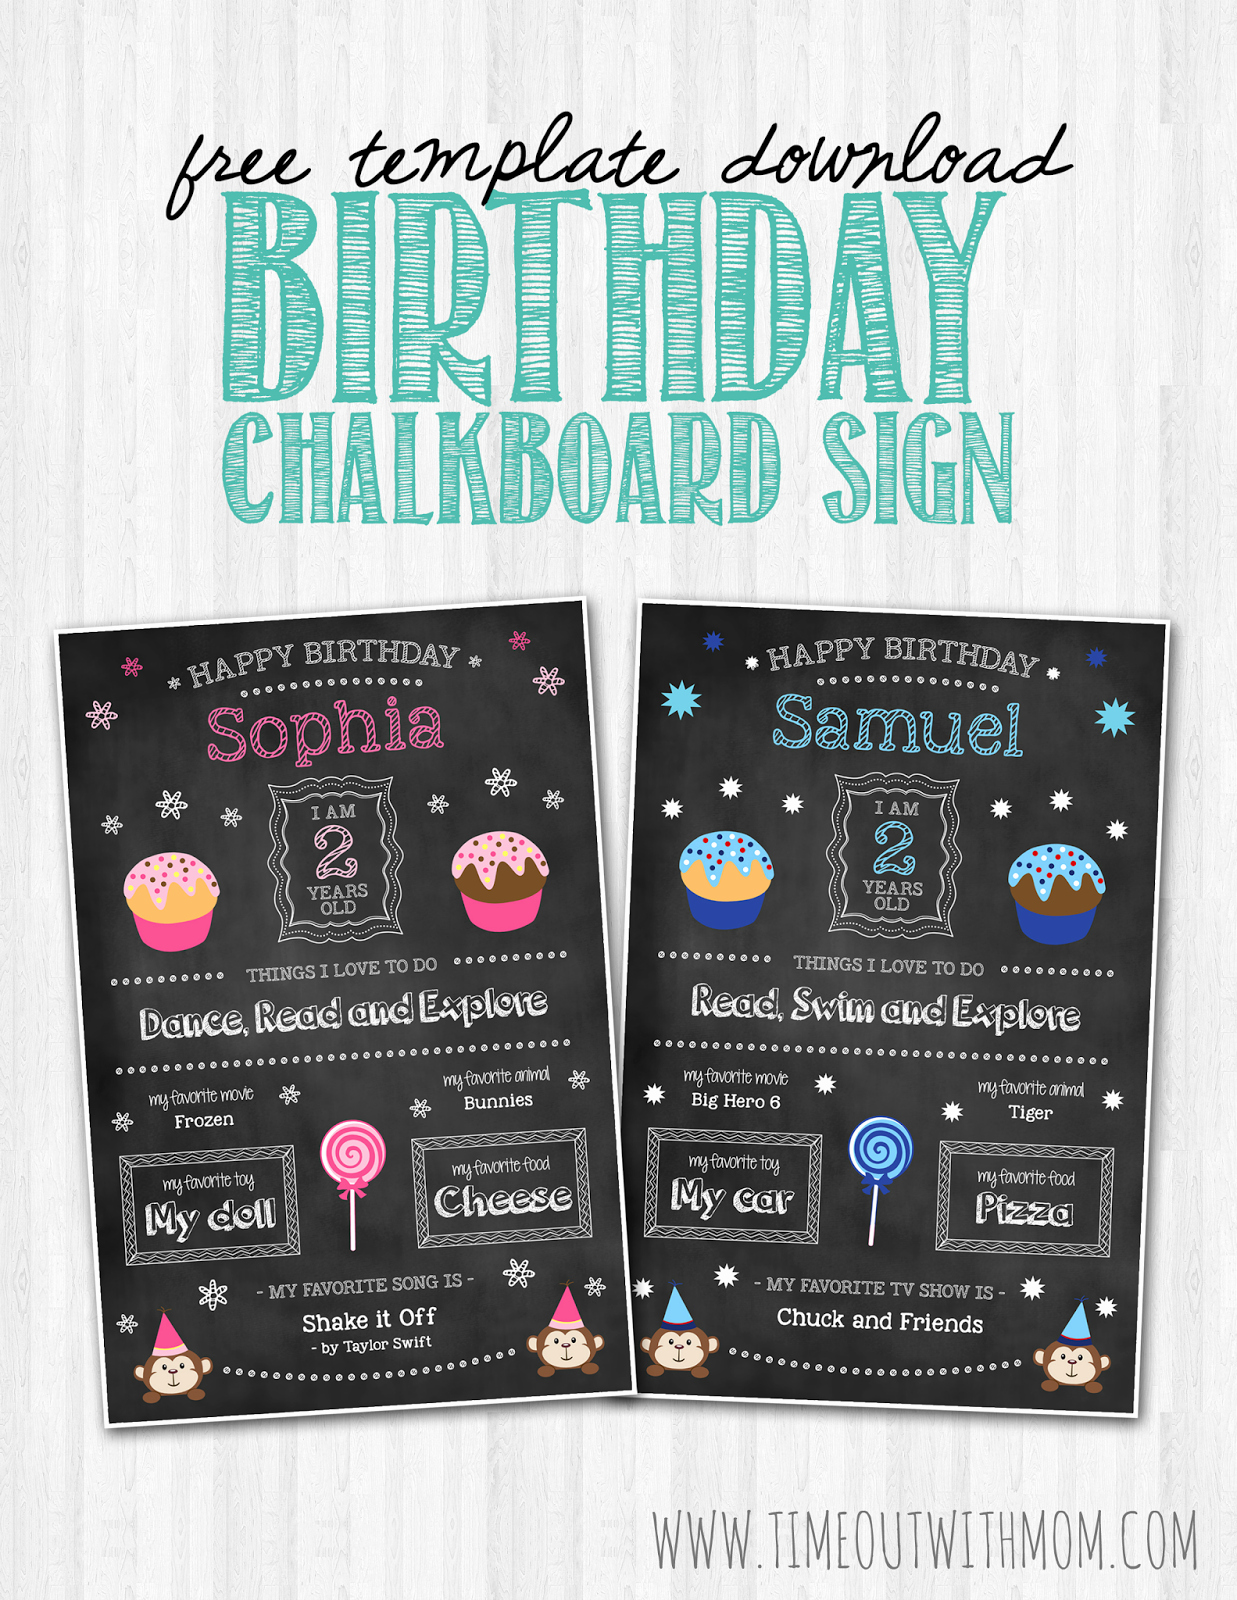 First Birthday Board Template Fresh Birthday Chalkboard Sign Template and Tutorial